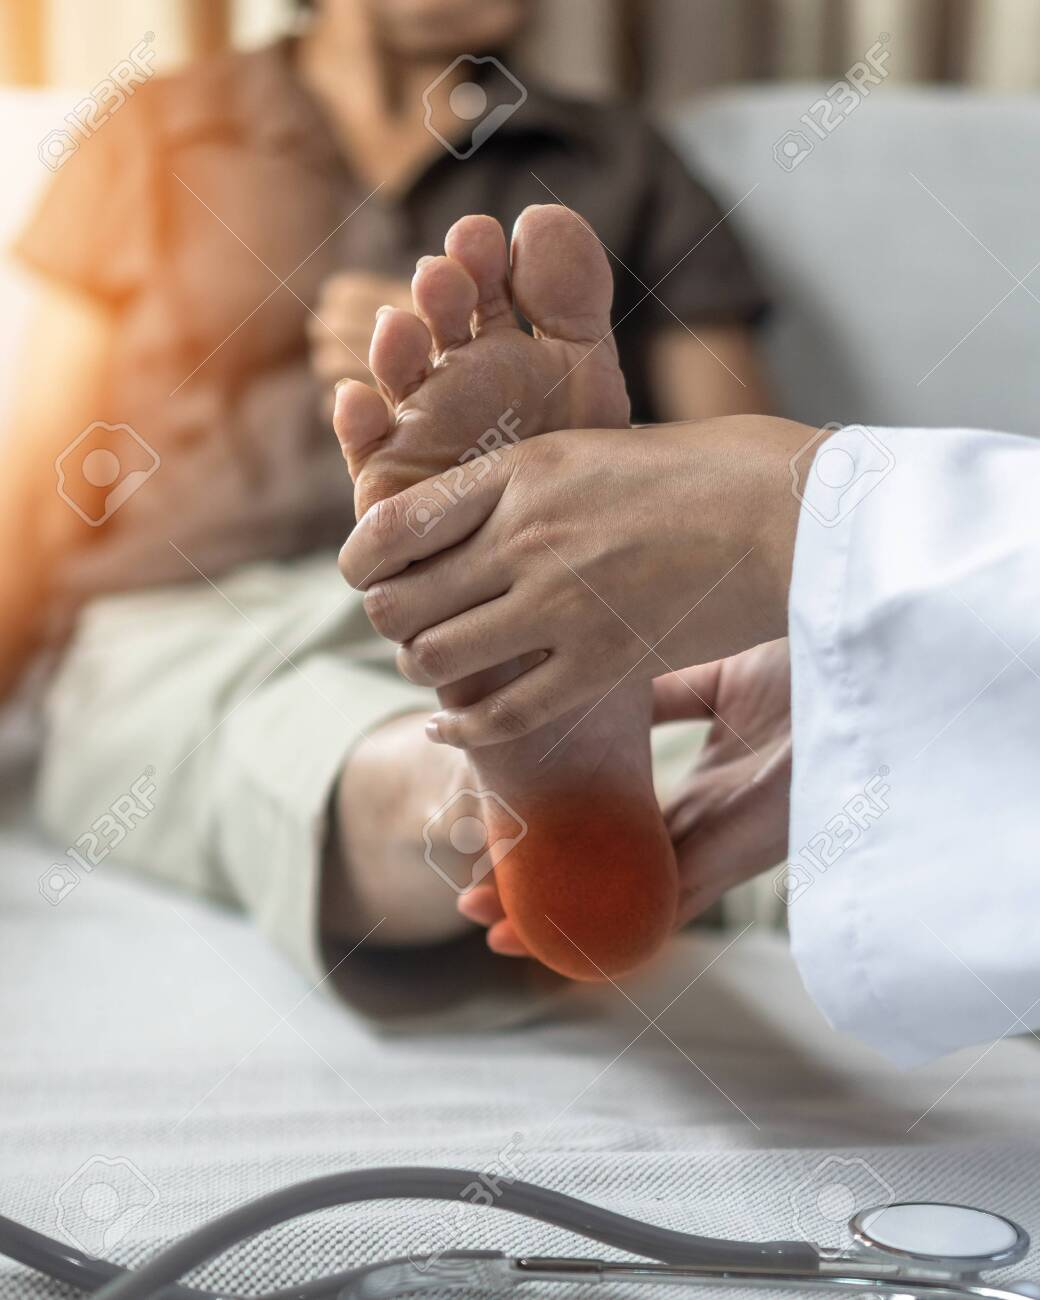 Plantar Fasciitis or heel pain illness in feet of woman patient who having medical exam with orthopaedic doctor on aching tendon, inflammation or disorder of the connective tissue on foot and toe - 129084900